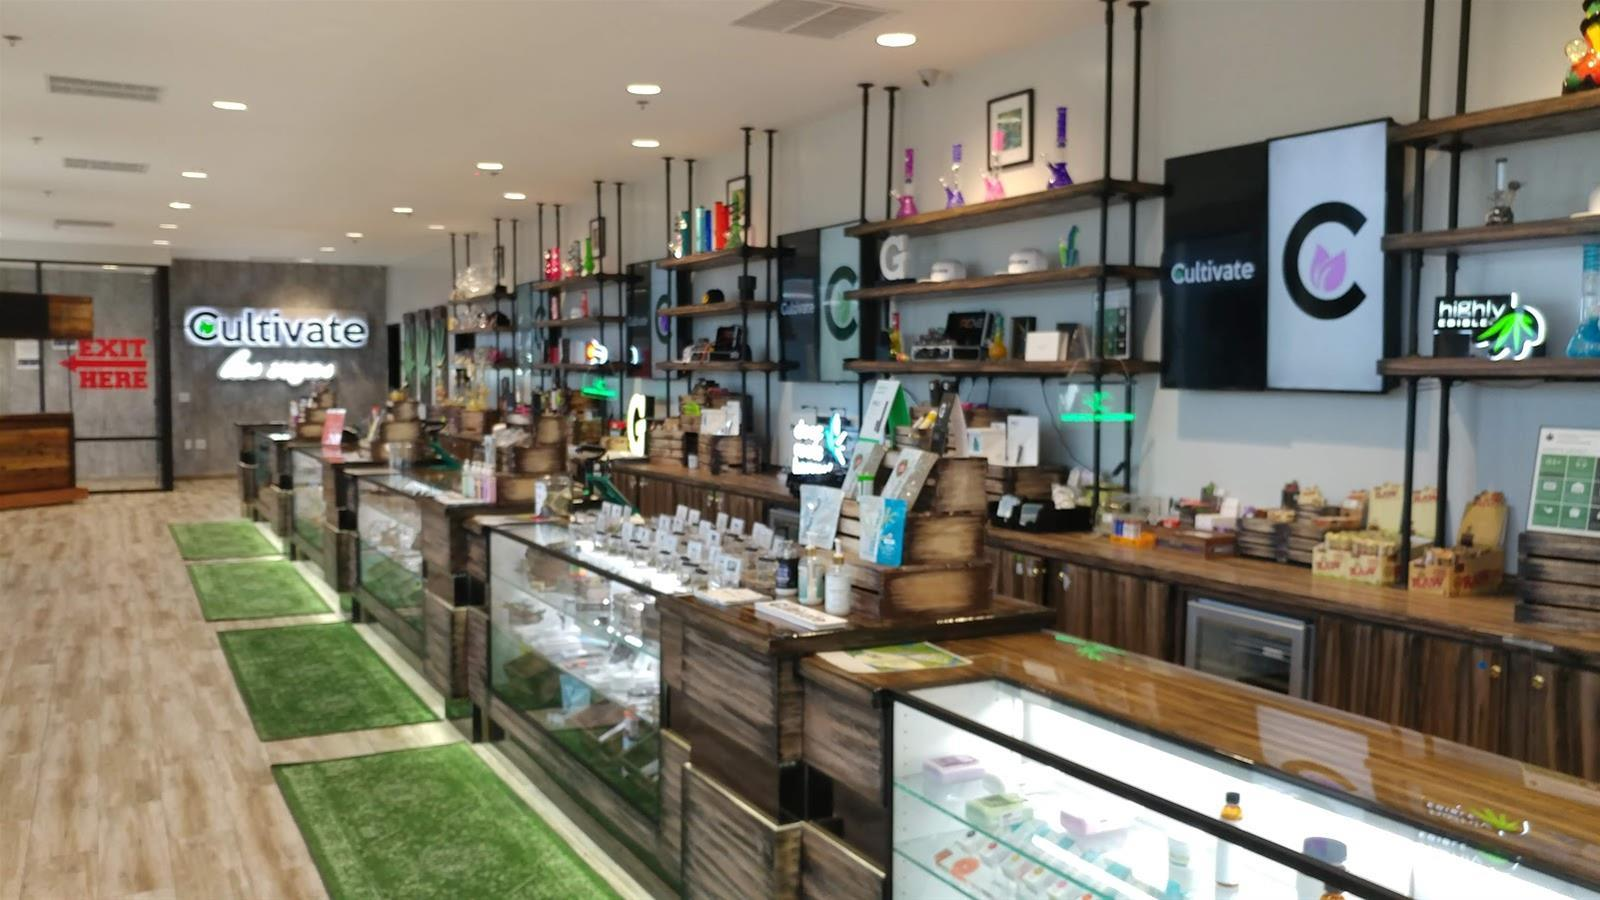 Cultivate-Dispensary-3